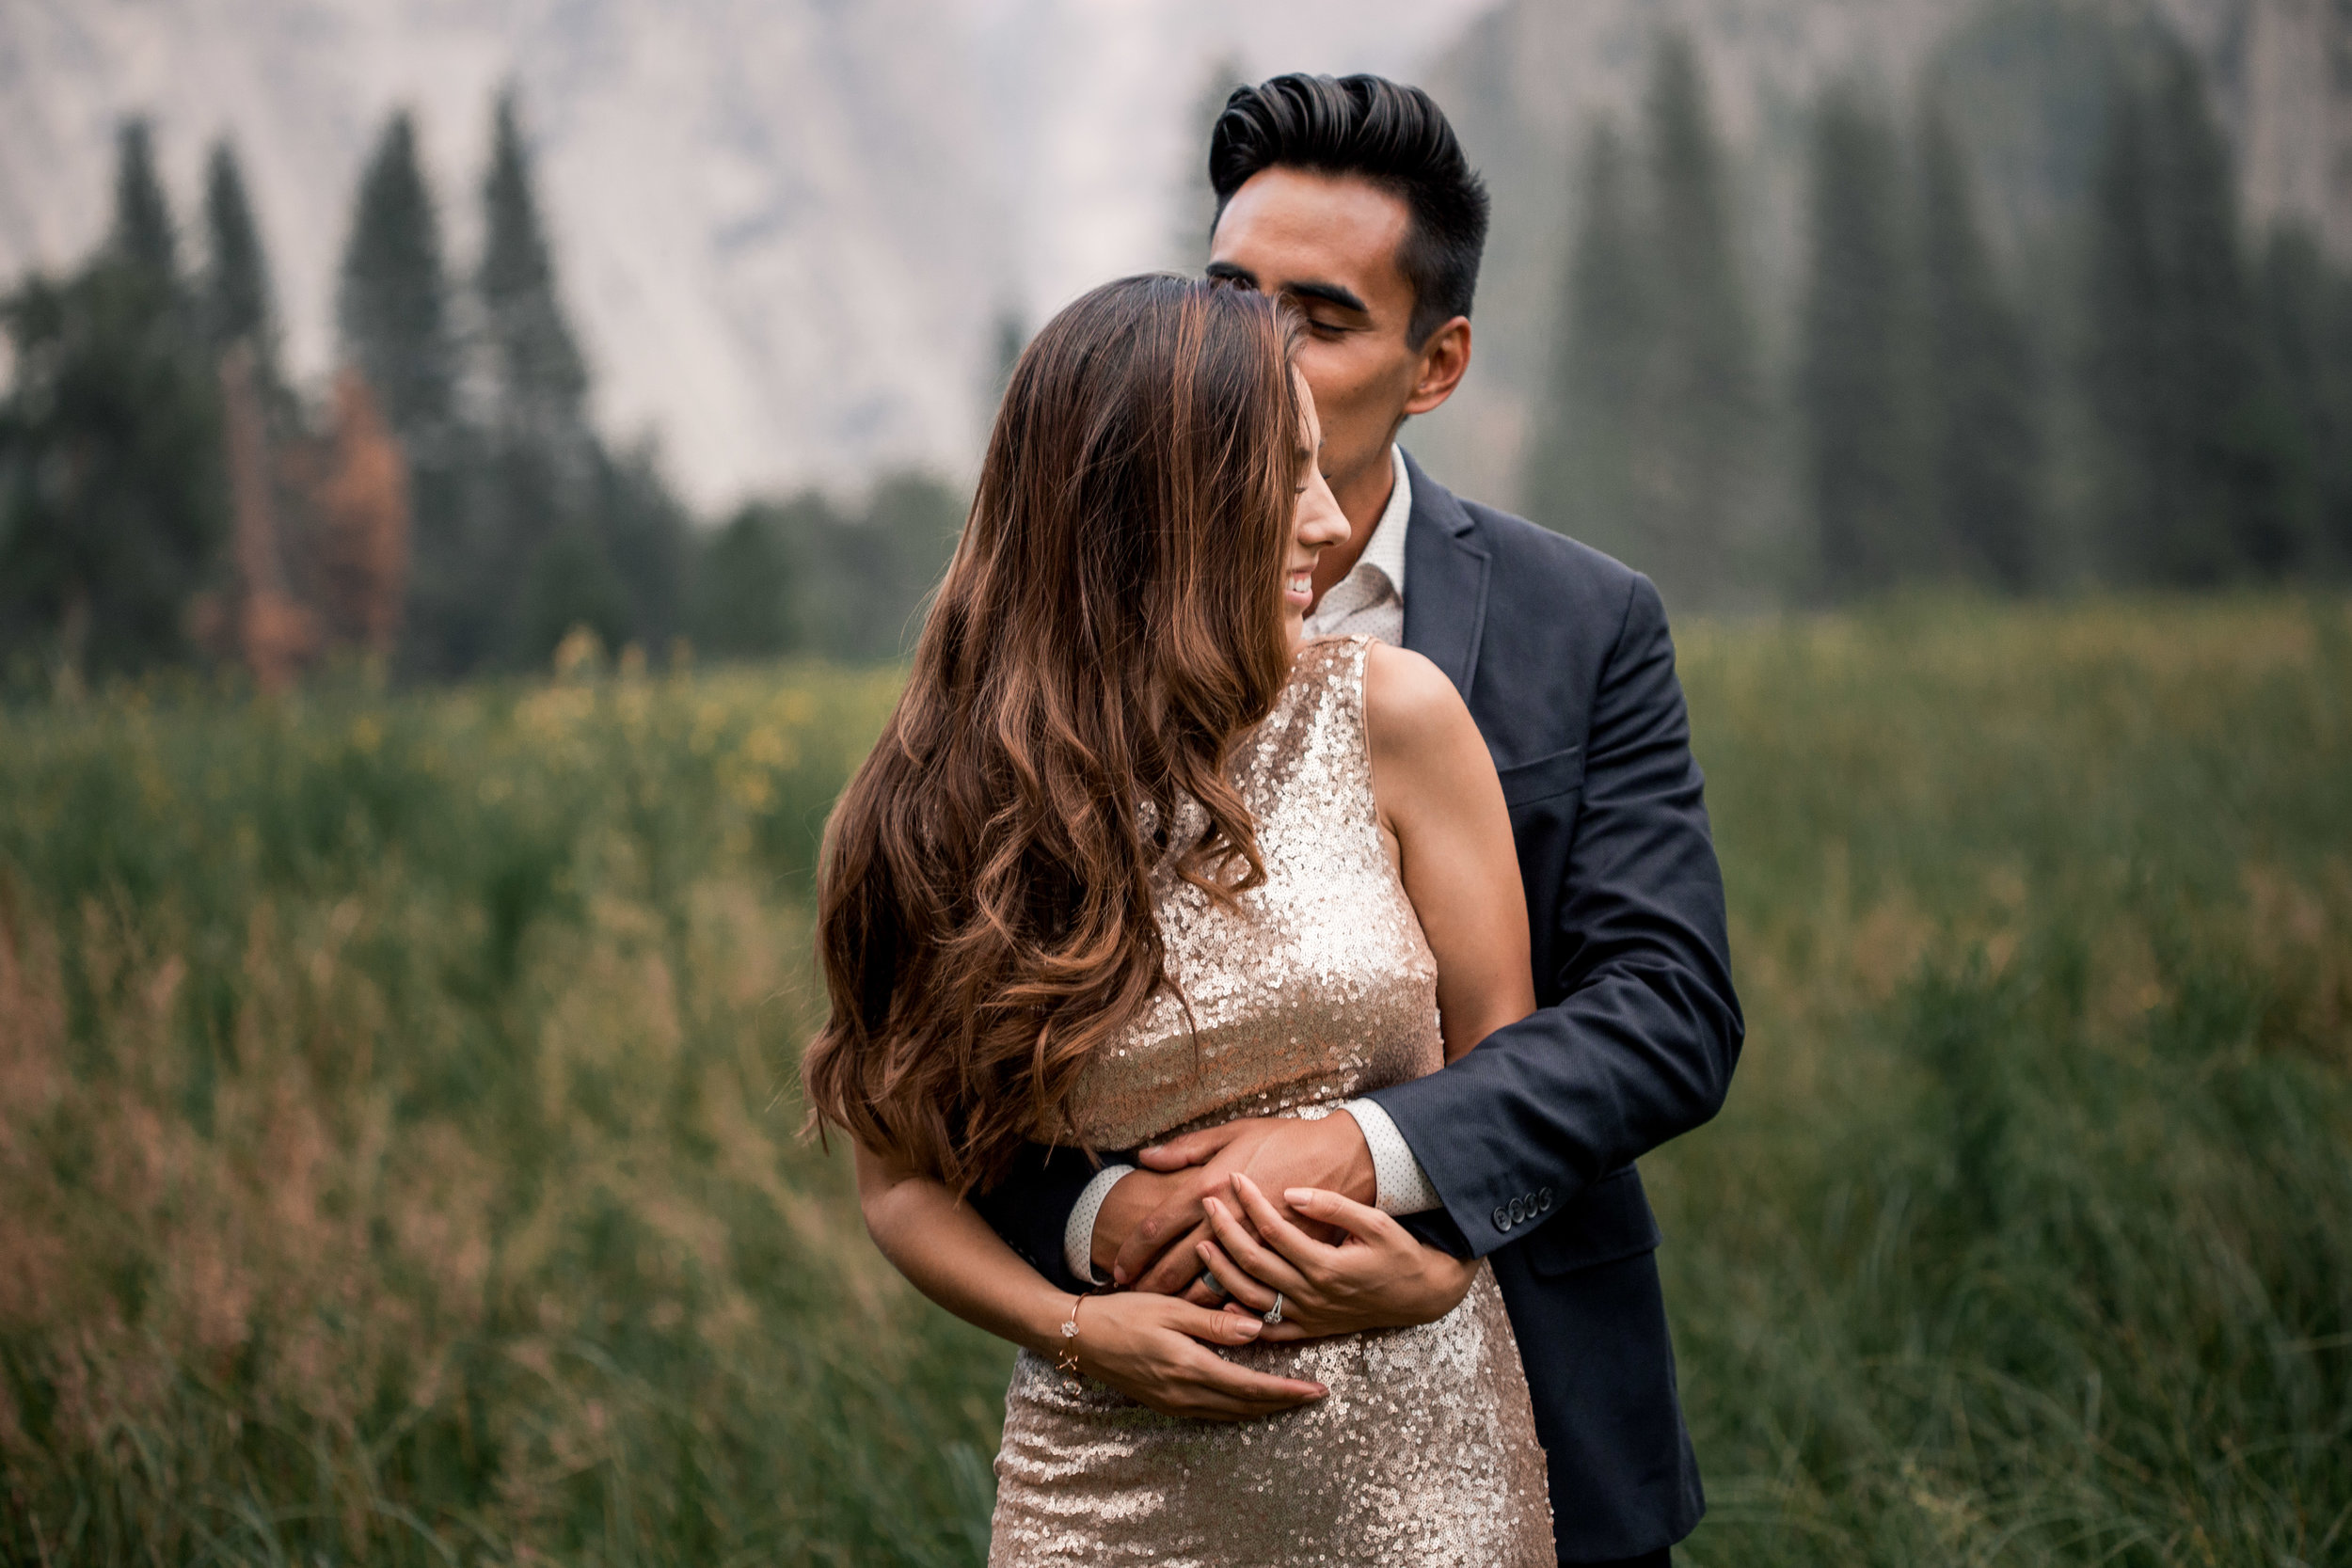 nicole-daacke-photography-yosemite-national-park-adventurous-engagement-session-half-dome-engagement-session-anniversary-photographer-yosemite-elopement-photographer-yosemite-intimate-wedding-photography-31.jpg